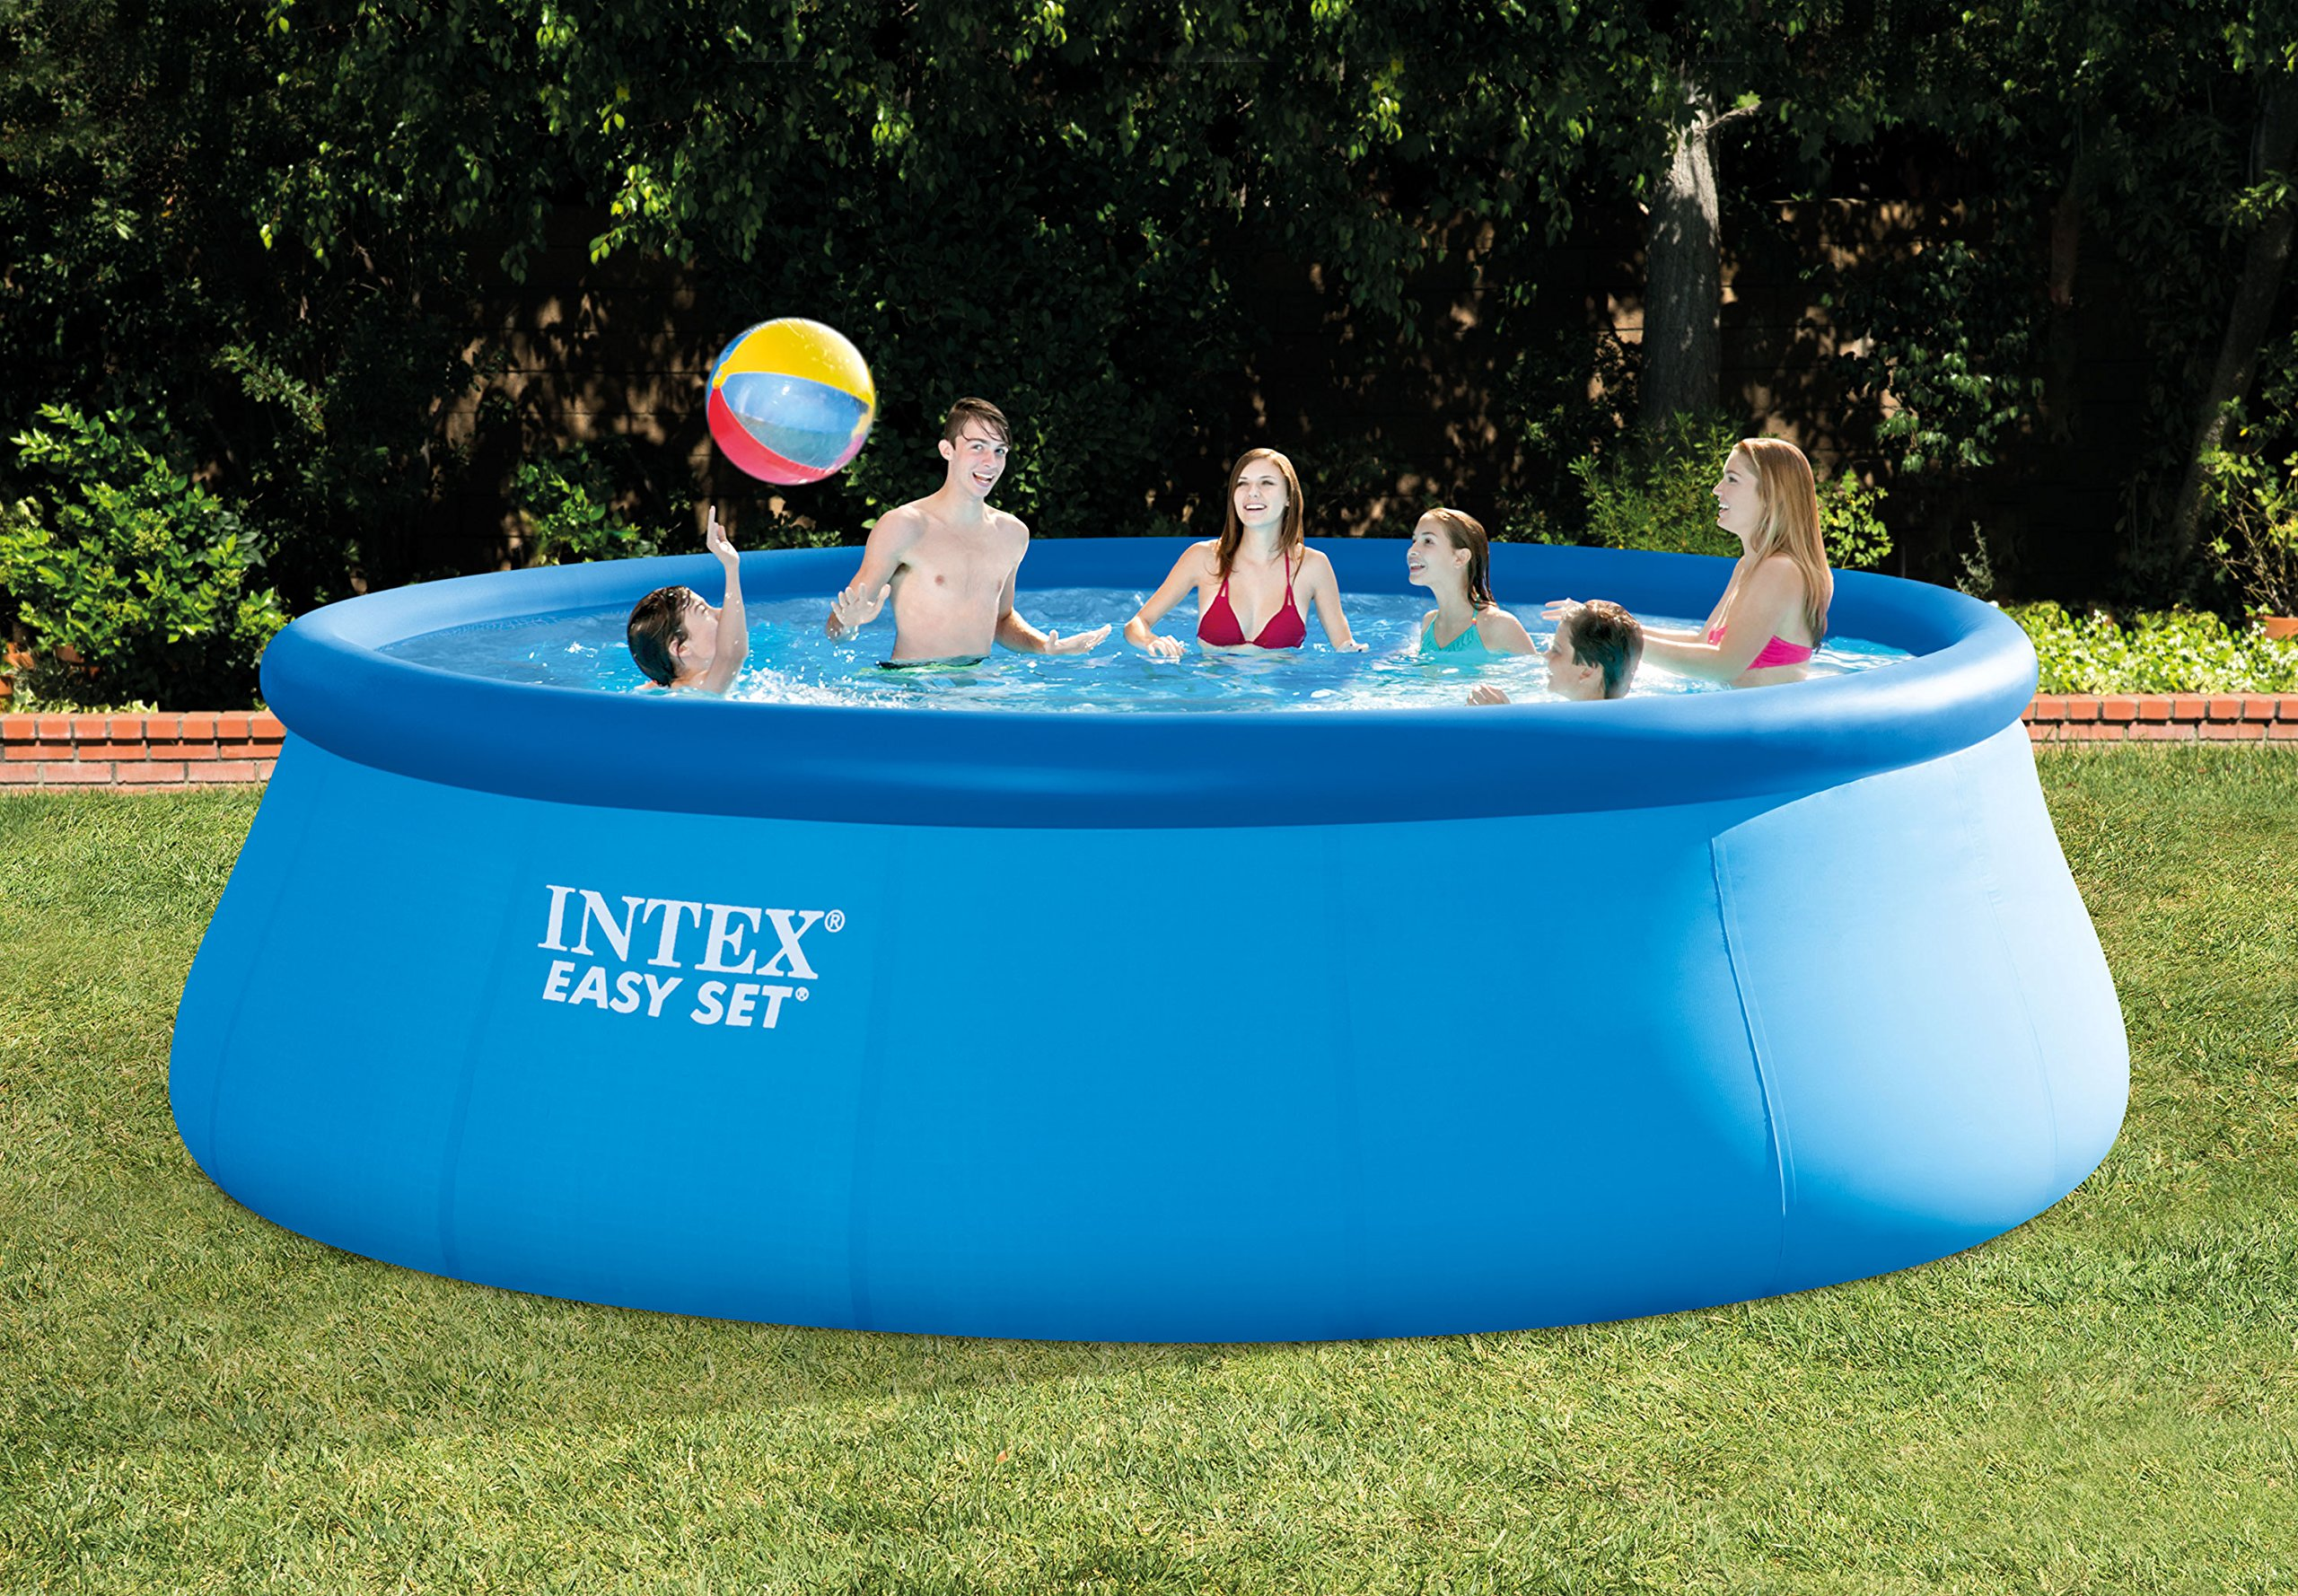 Intex 15ft X 48in Easy Set Pool Set with Filter Pump, Ladder, Ground Cloth & Pool Cover by Intex (Image #4)